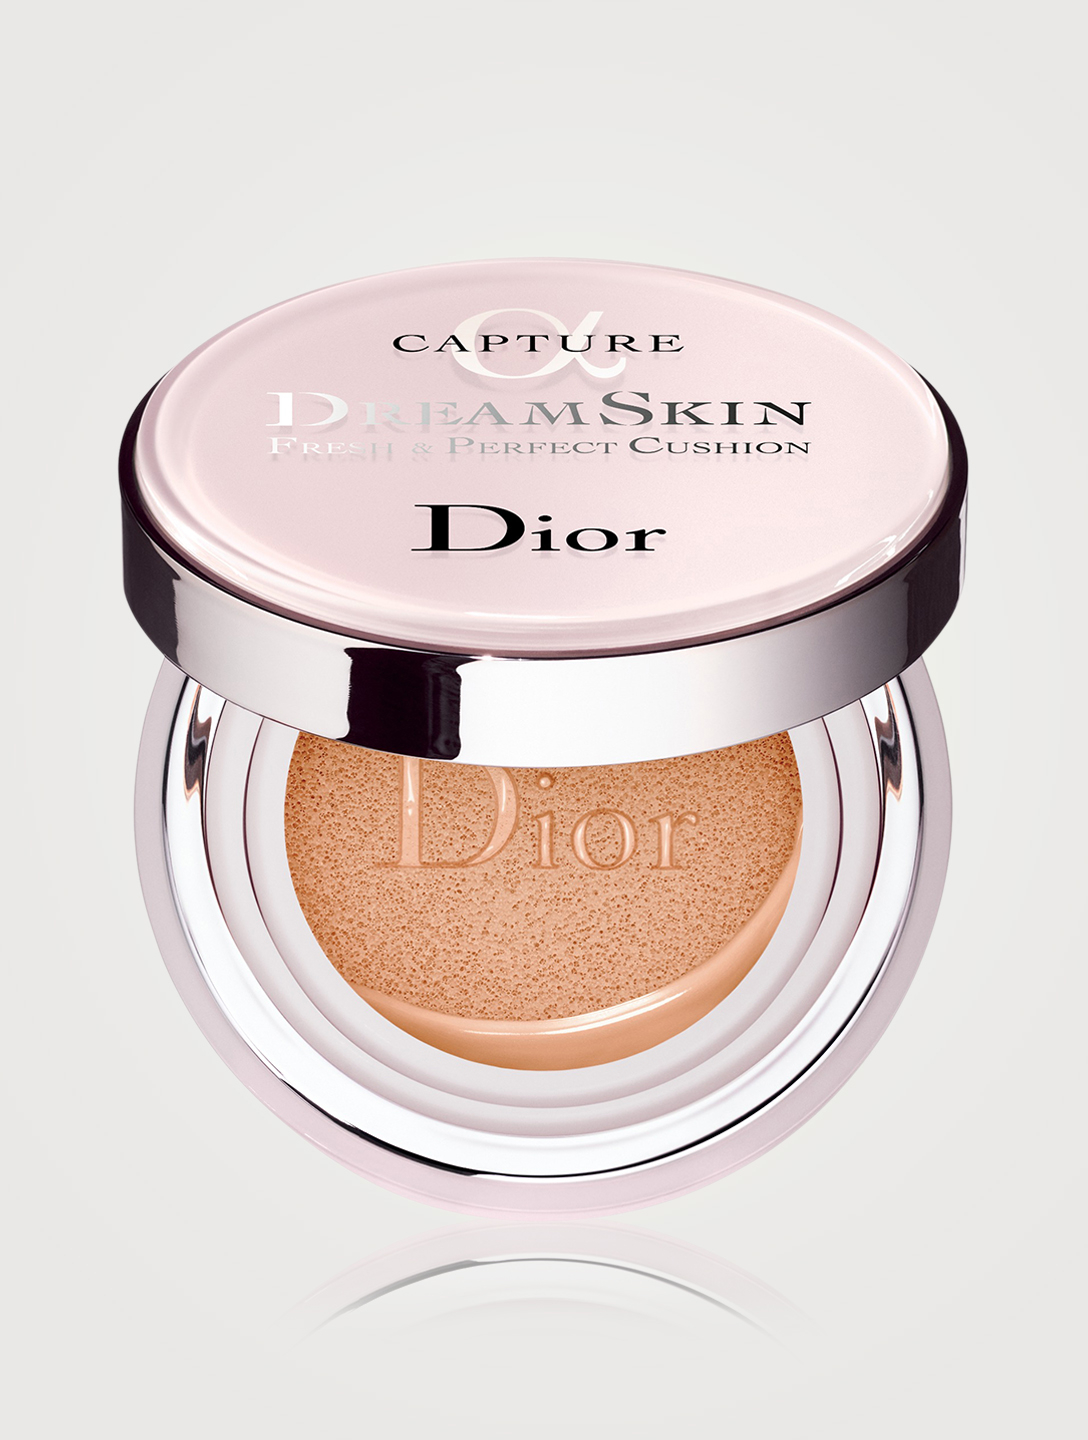 DIOR Fond de teint Dreamskin Fresh & Perfect Cushion Beauté Écru